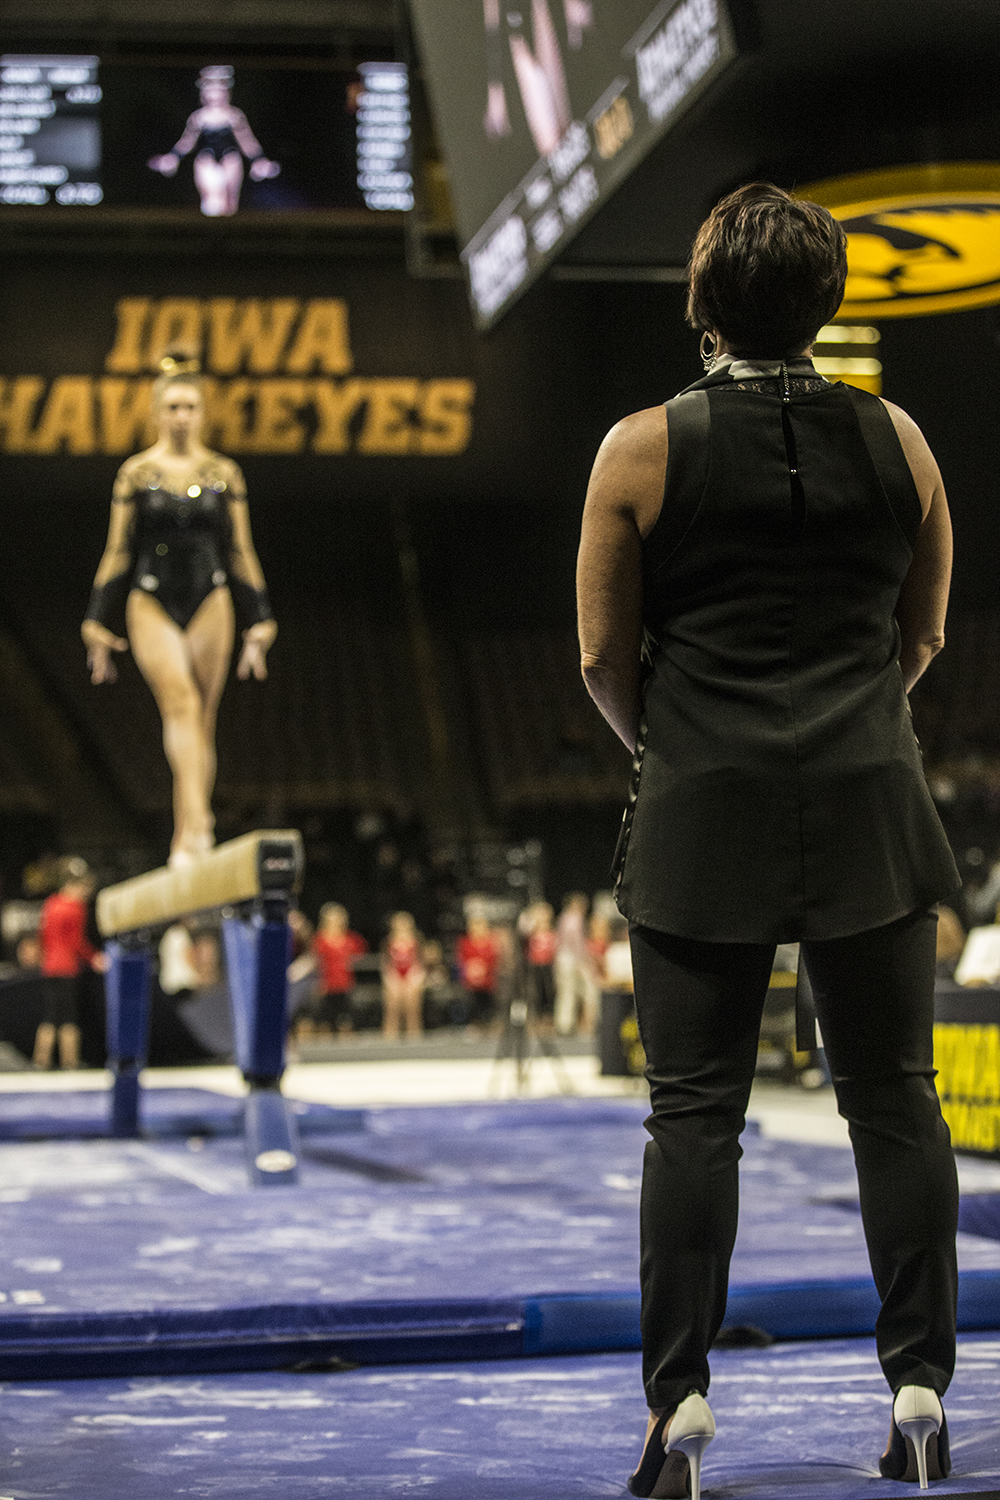 Assistant+coach+Jennifer+Green+watches+Iowa+gymnast+Bridget+Killian+compete+on+the+beam+during+women%27s+gymnastics+vs.+SEMO+at+Carver-Hawkeye+Arena+on+Friday%2C+January+11%2C+2019.+The+GymHawks+defeated+the+Redhawks+194.700-180.925.+